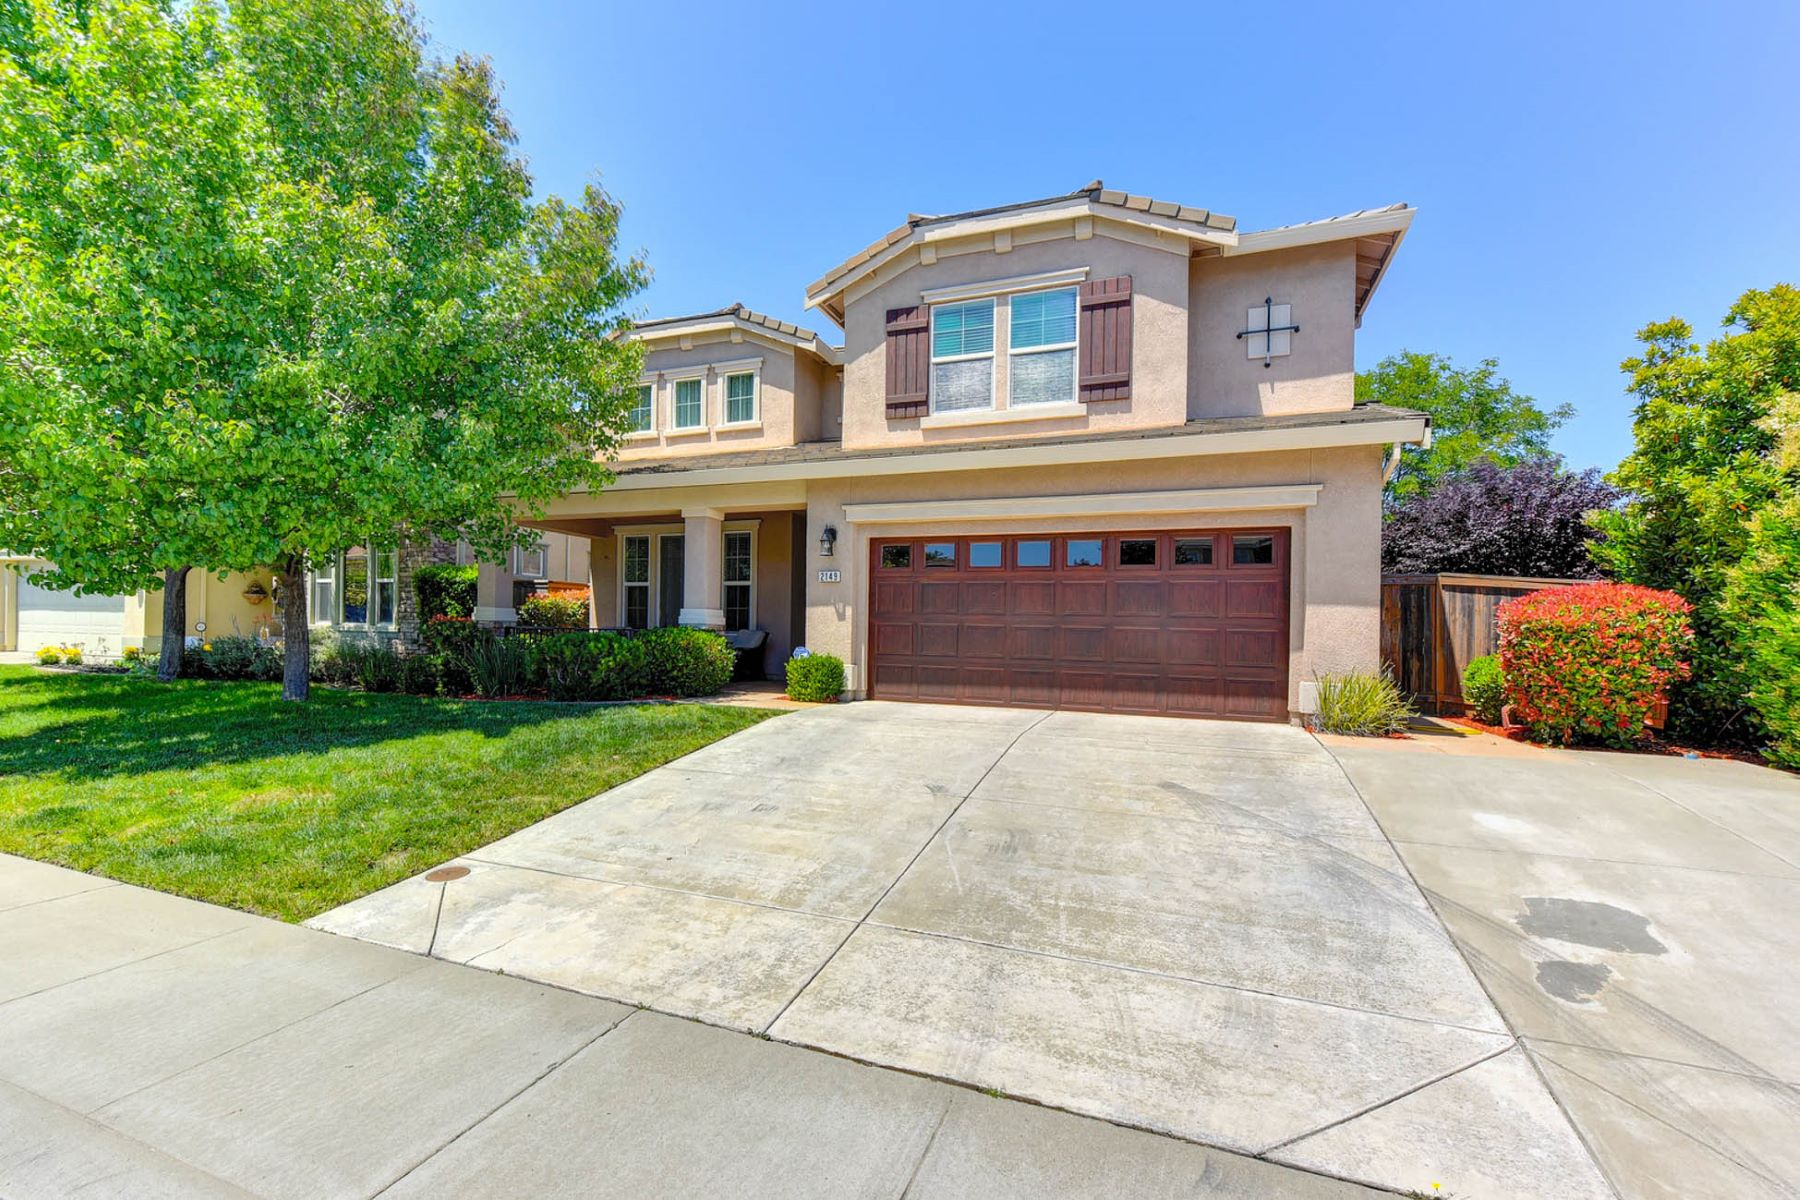 single family homes for Active at 2149 Eldmire Way, Roseville, CA 95747 2149 Eldmire Way Roseville, California 95747 United States